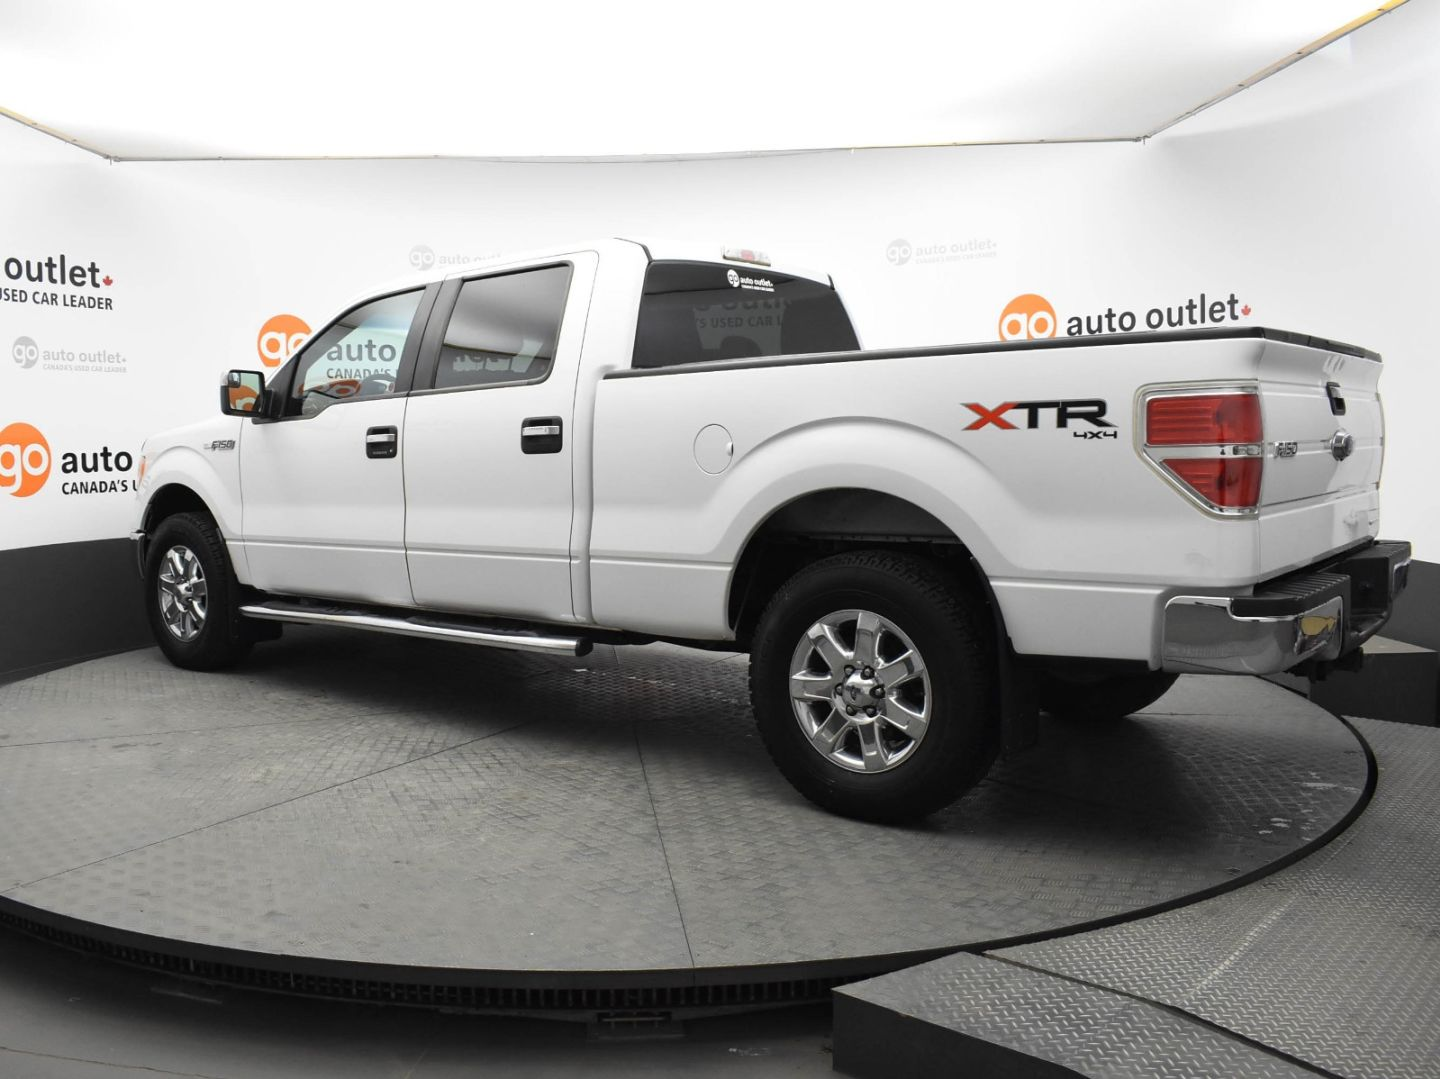 2013 Ford F-150 XLT for sale in Leduc, Alberta